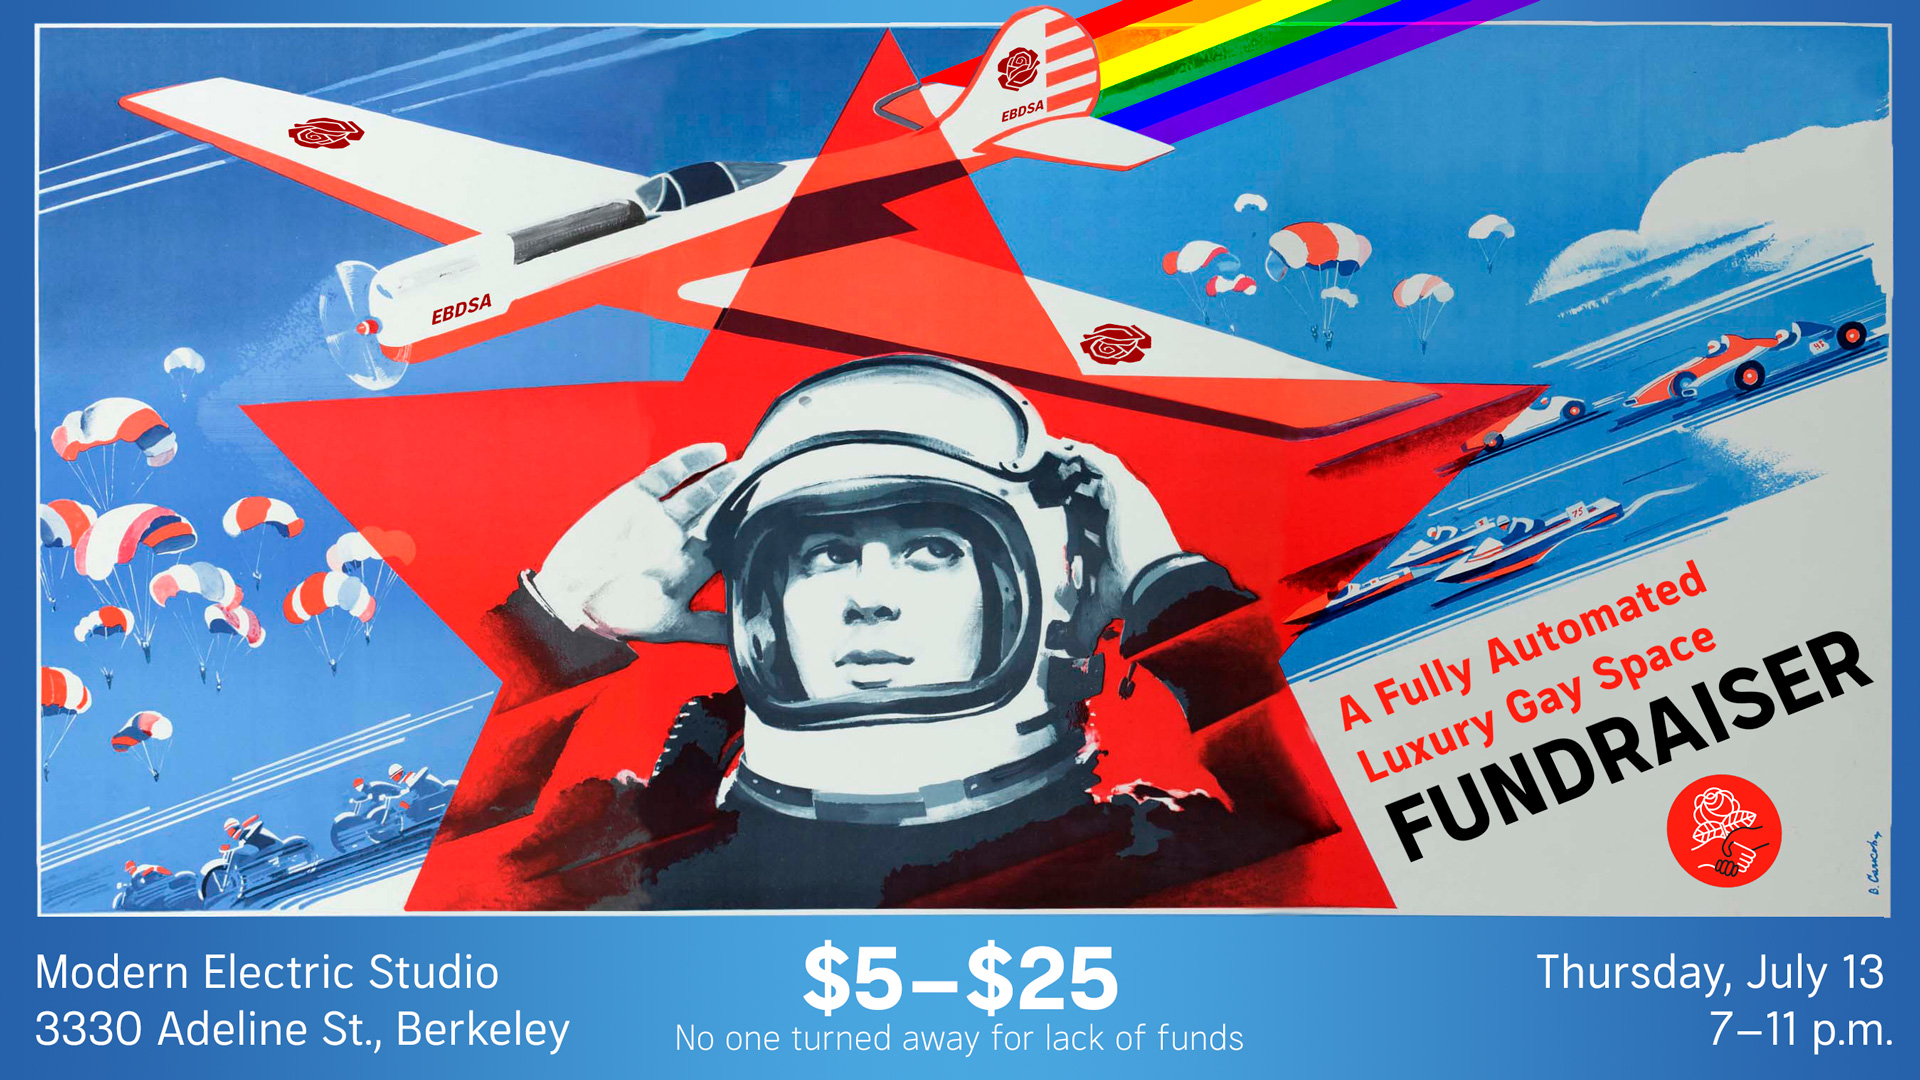 A Fully Automated Luxury Gay Space Fundraiser